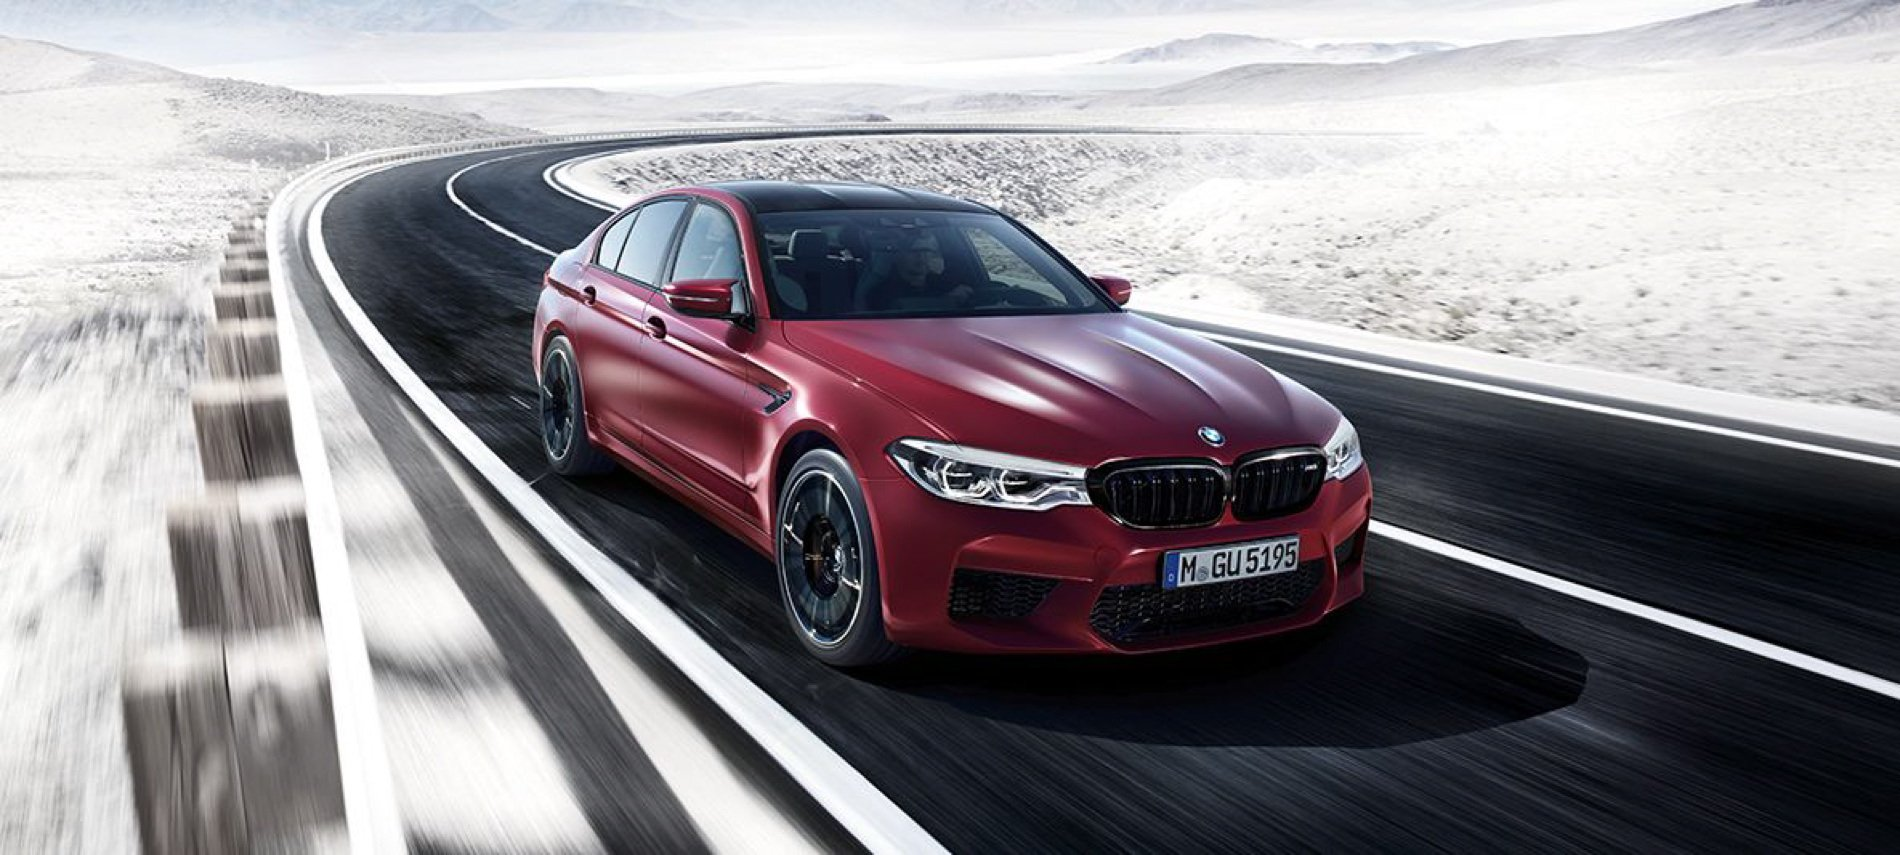 Download wallpapers of the new 2018 BMW F90 M5 1900x855